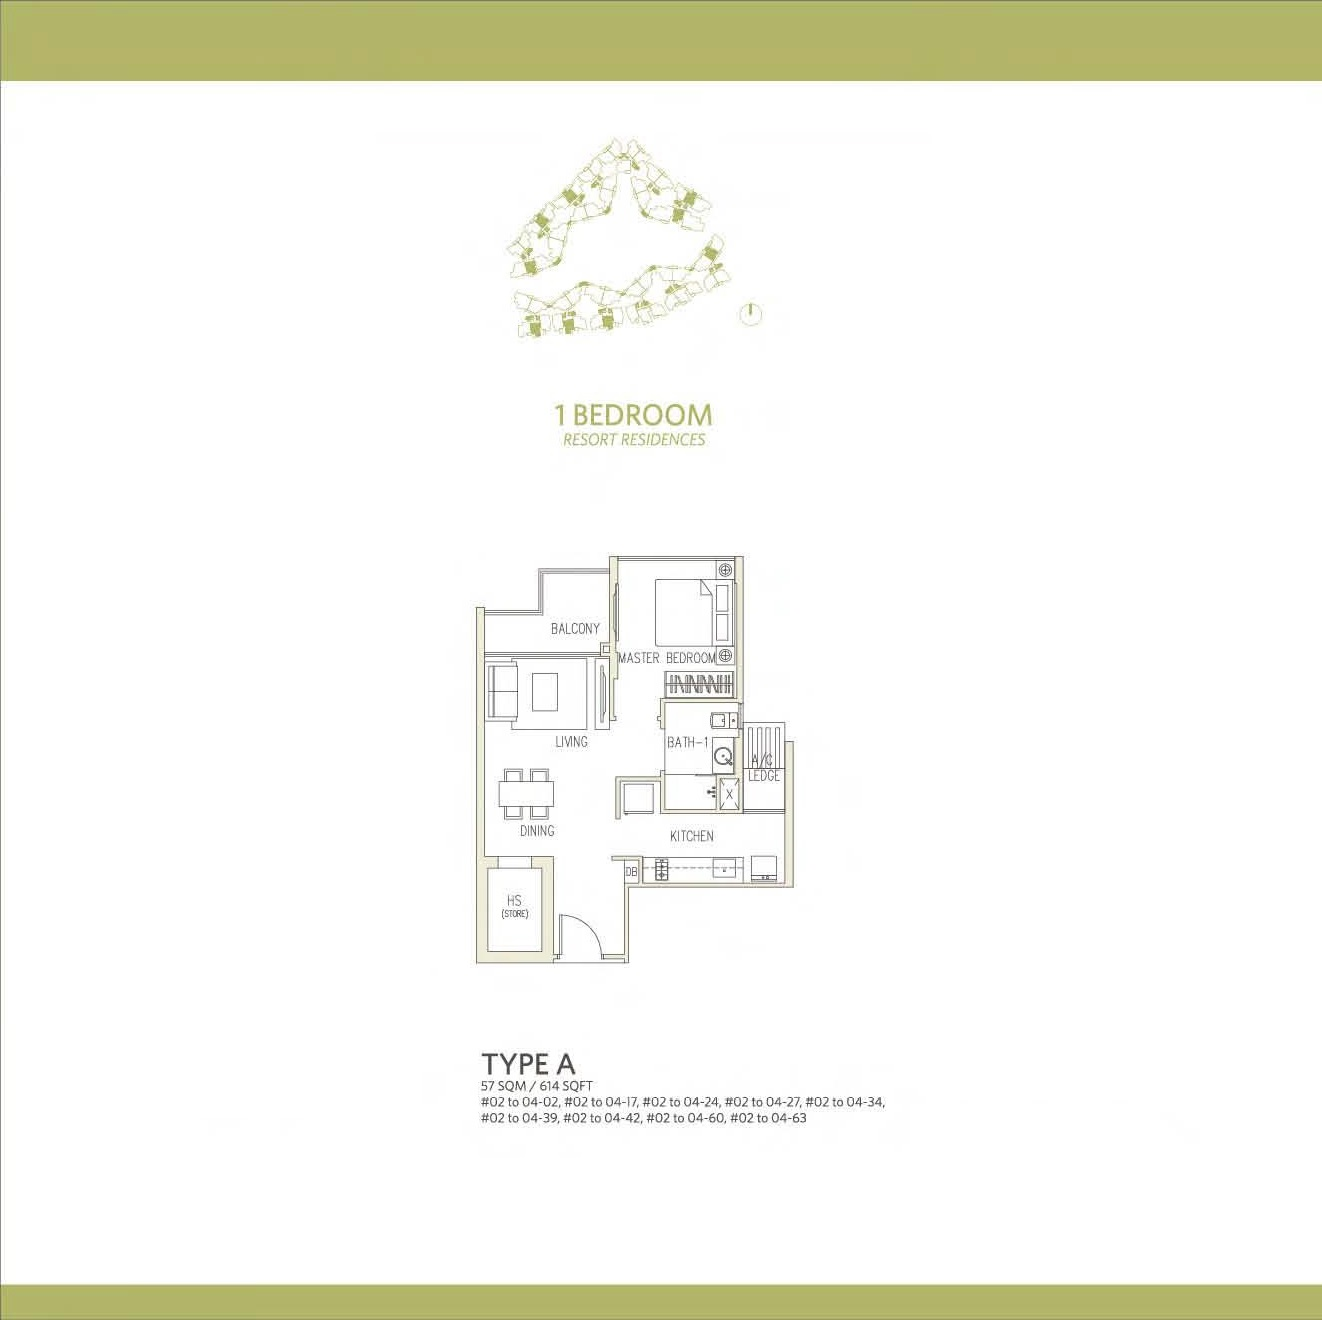 Canberra Residences 1 Bedroom Floor Plans Type A